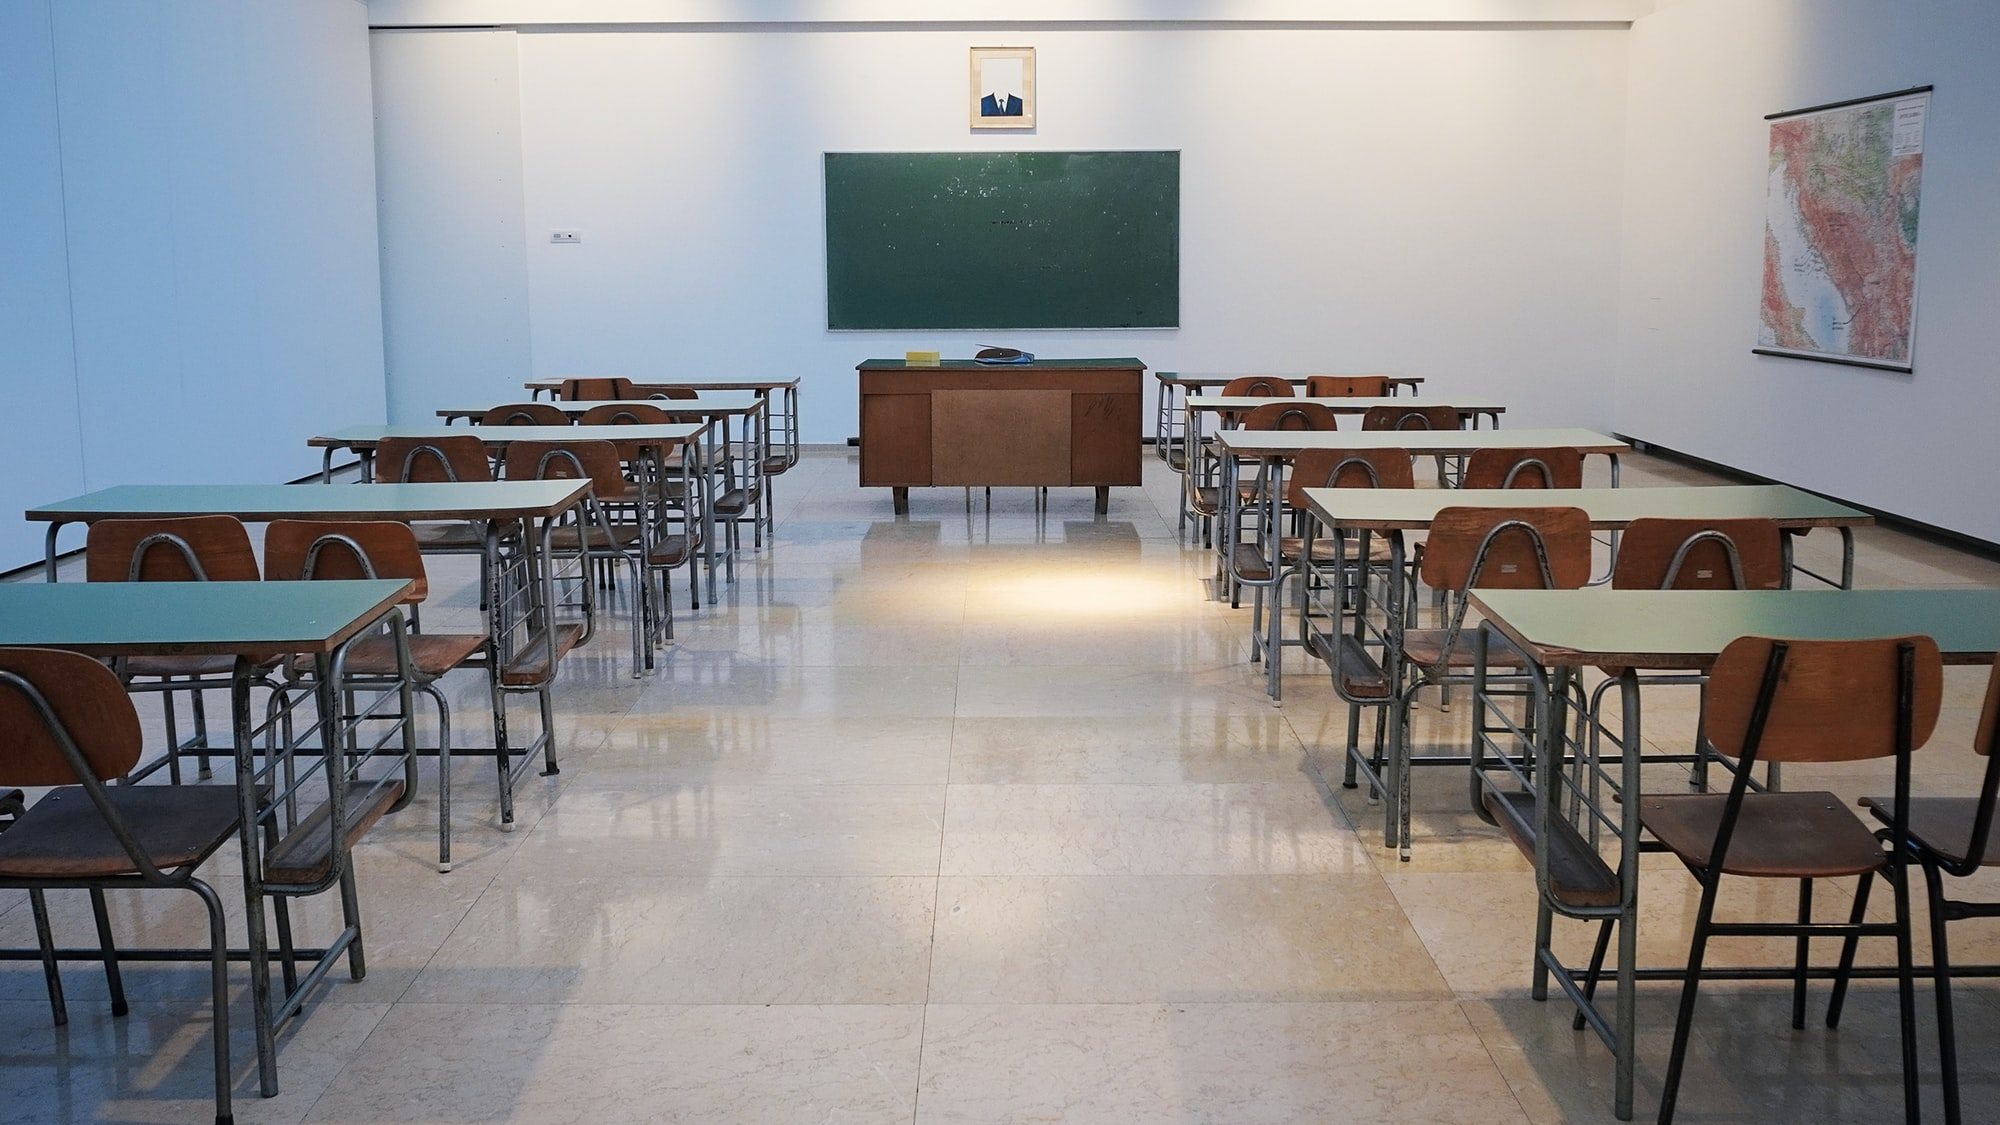 Importance of blending old and new teaching methods for effective learning